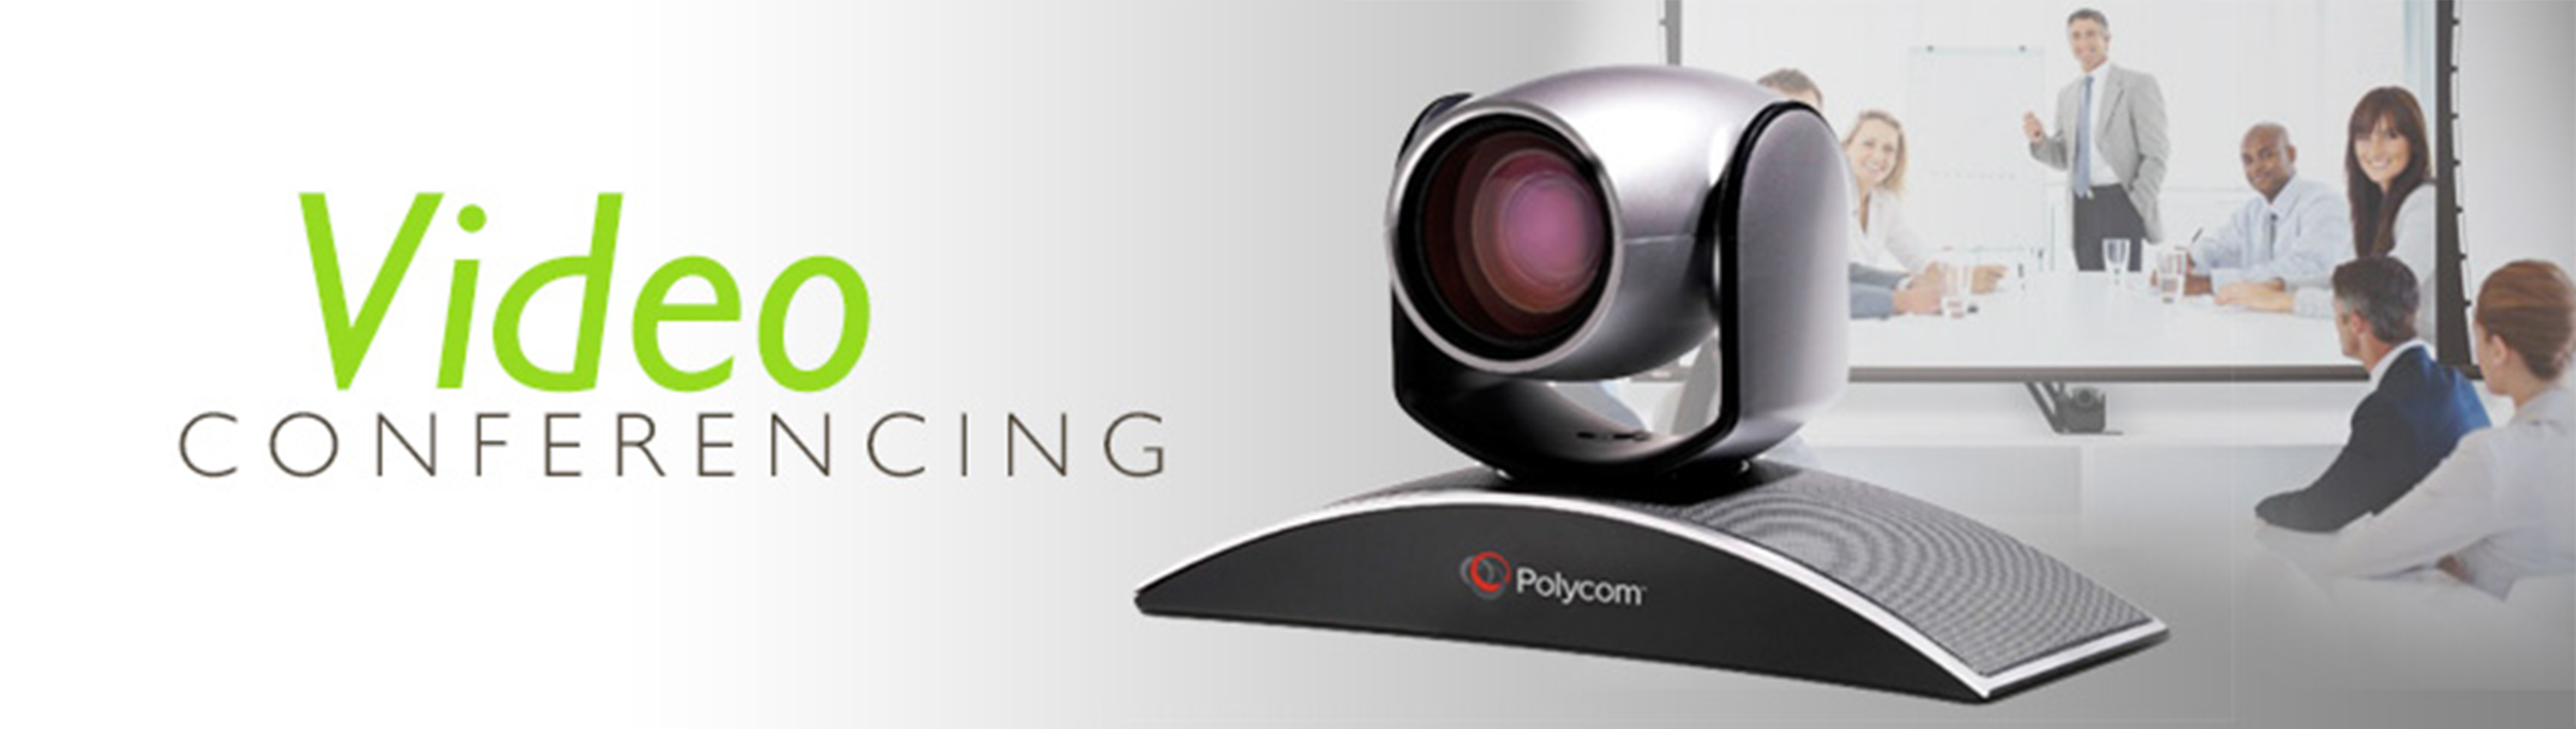 Video Conferencing Graphic Image